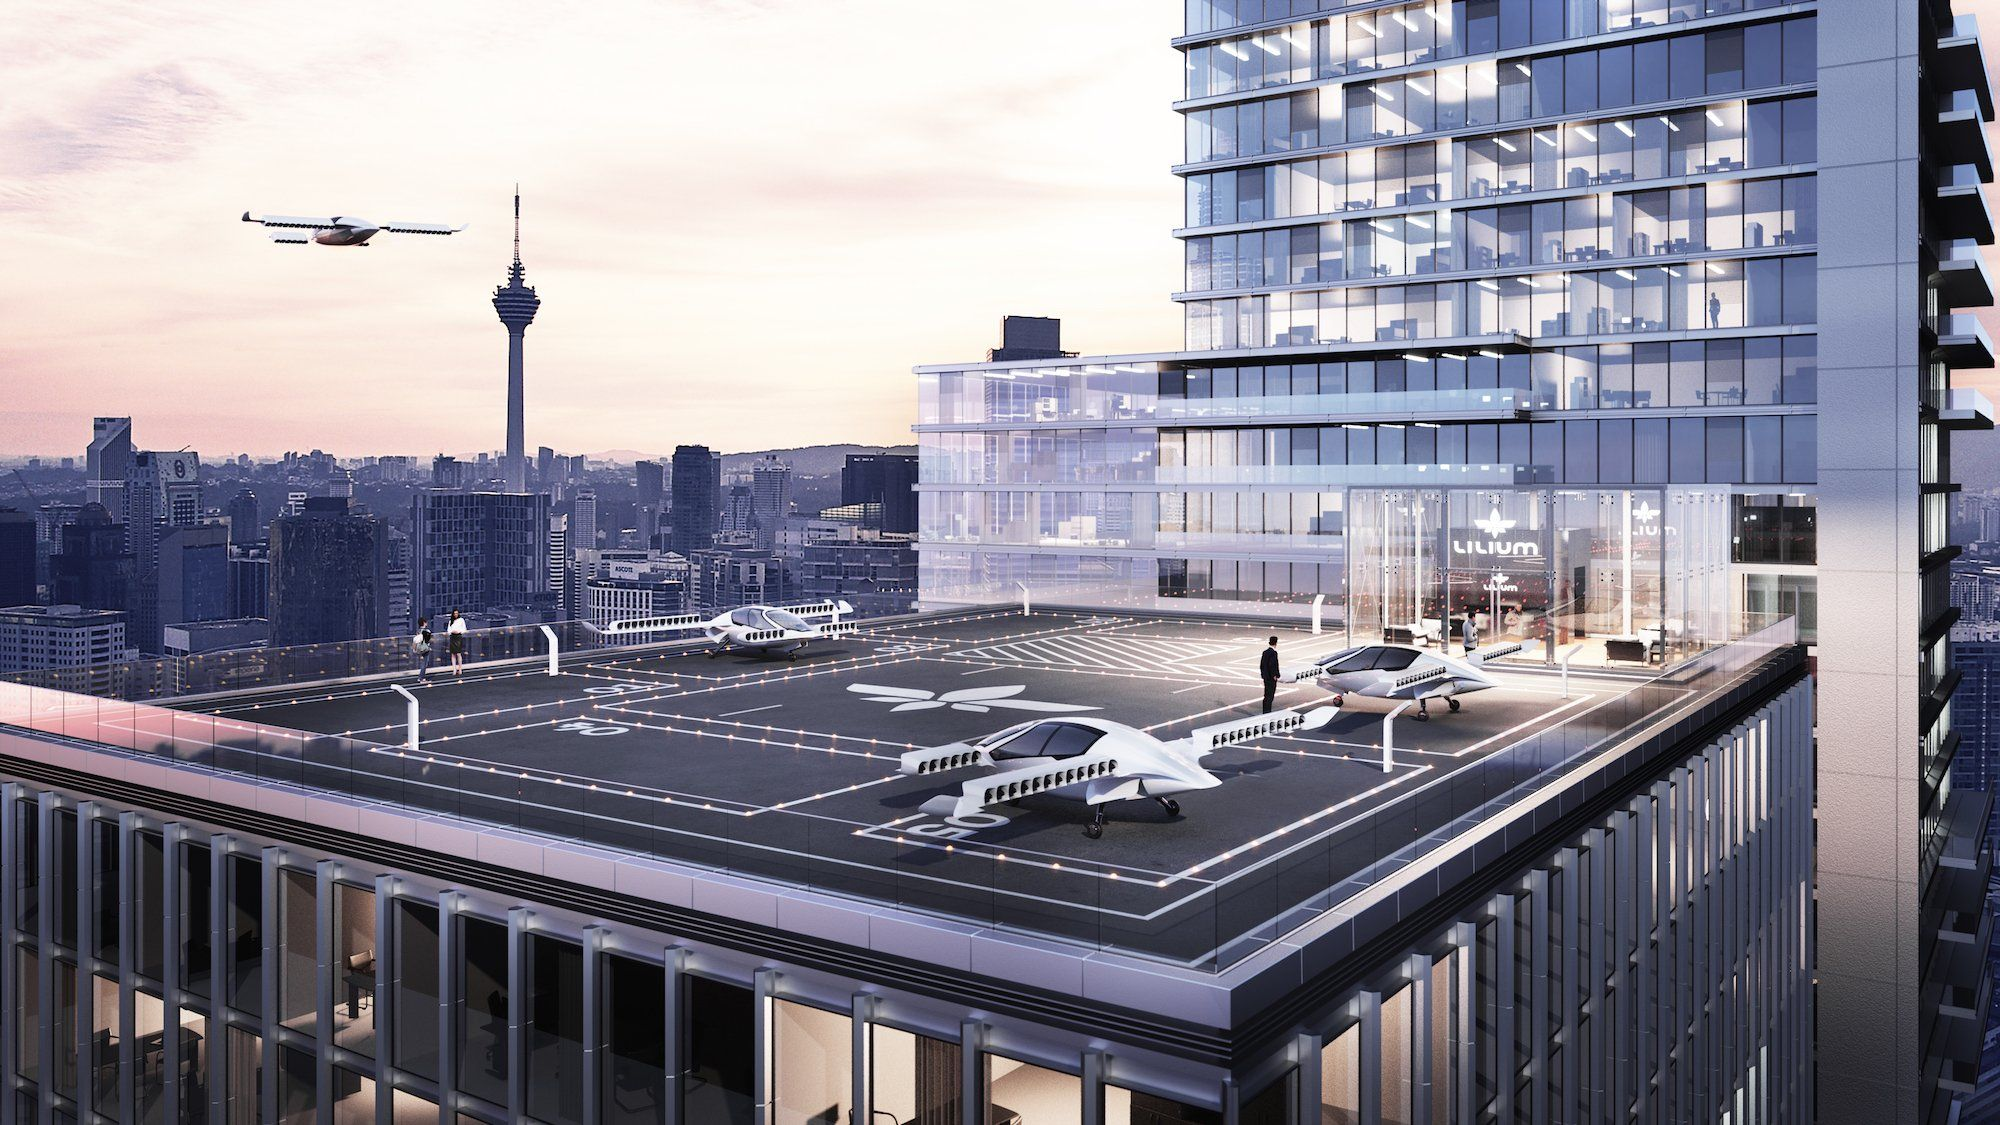 A German startup building an electric jet taxi just raised